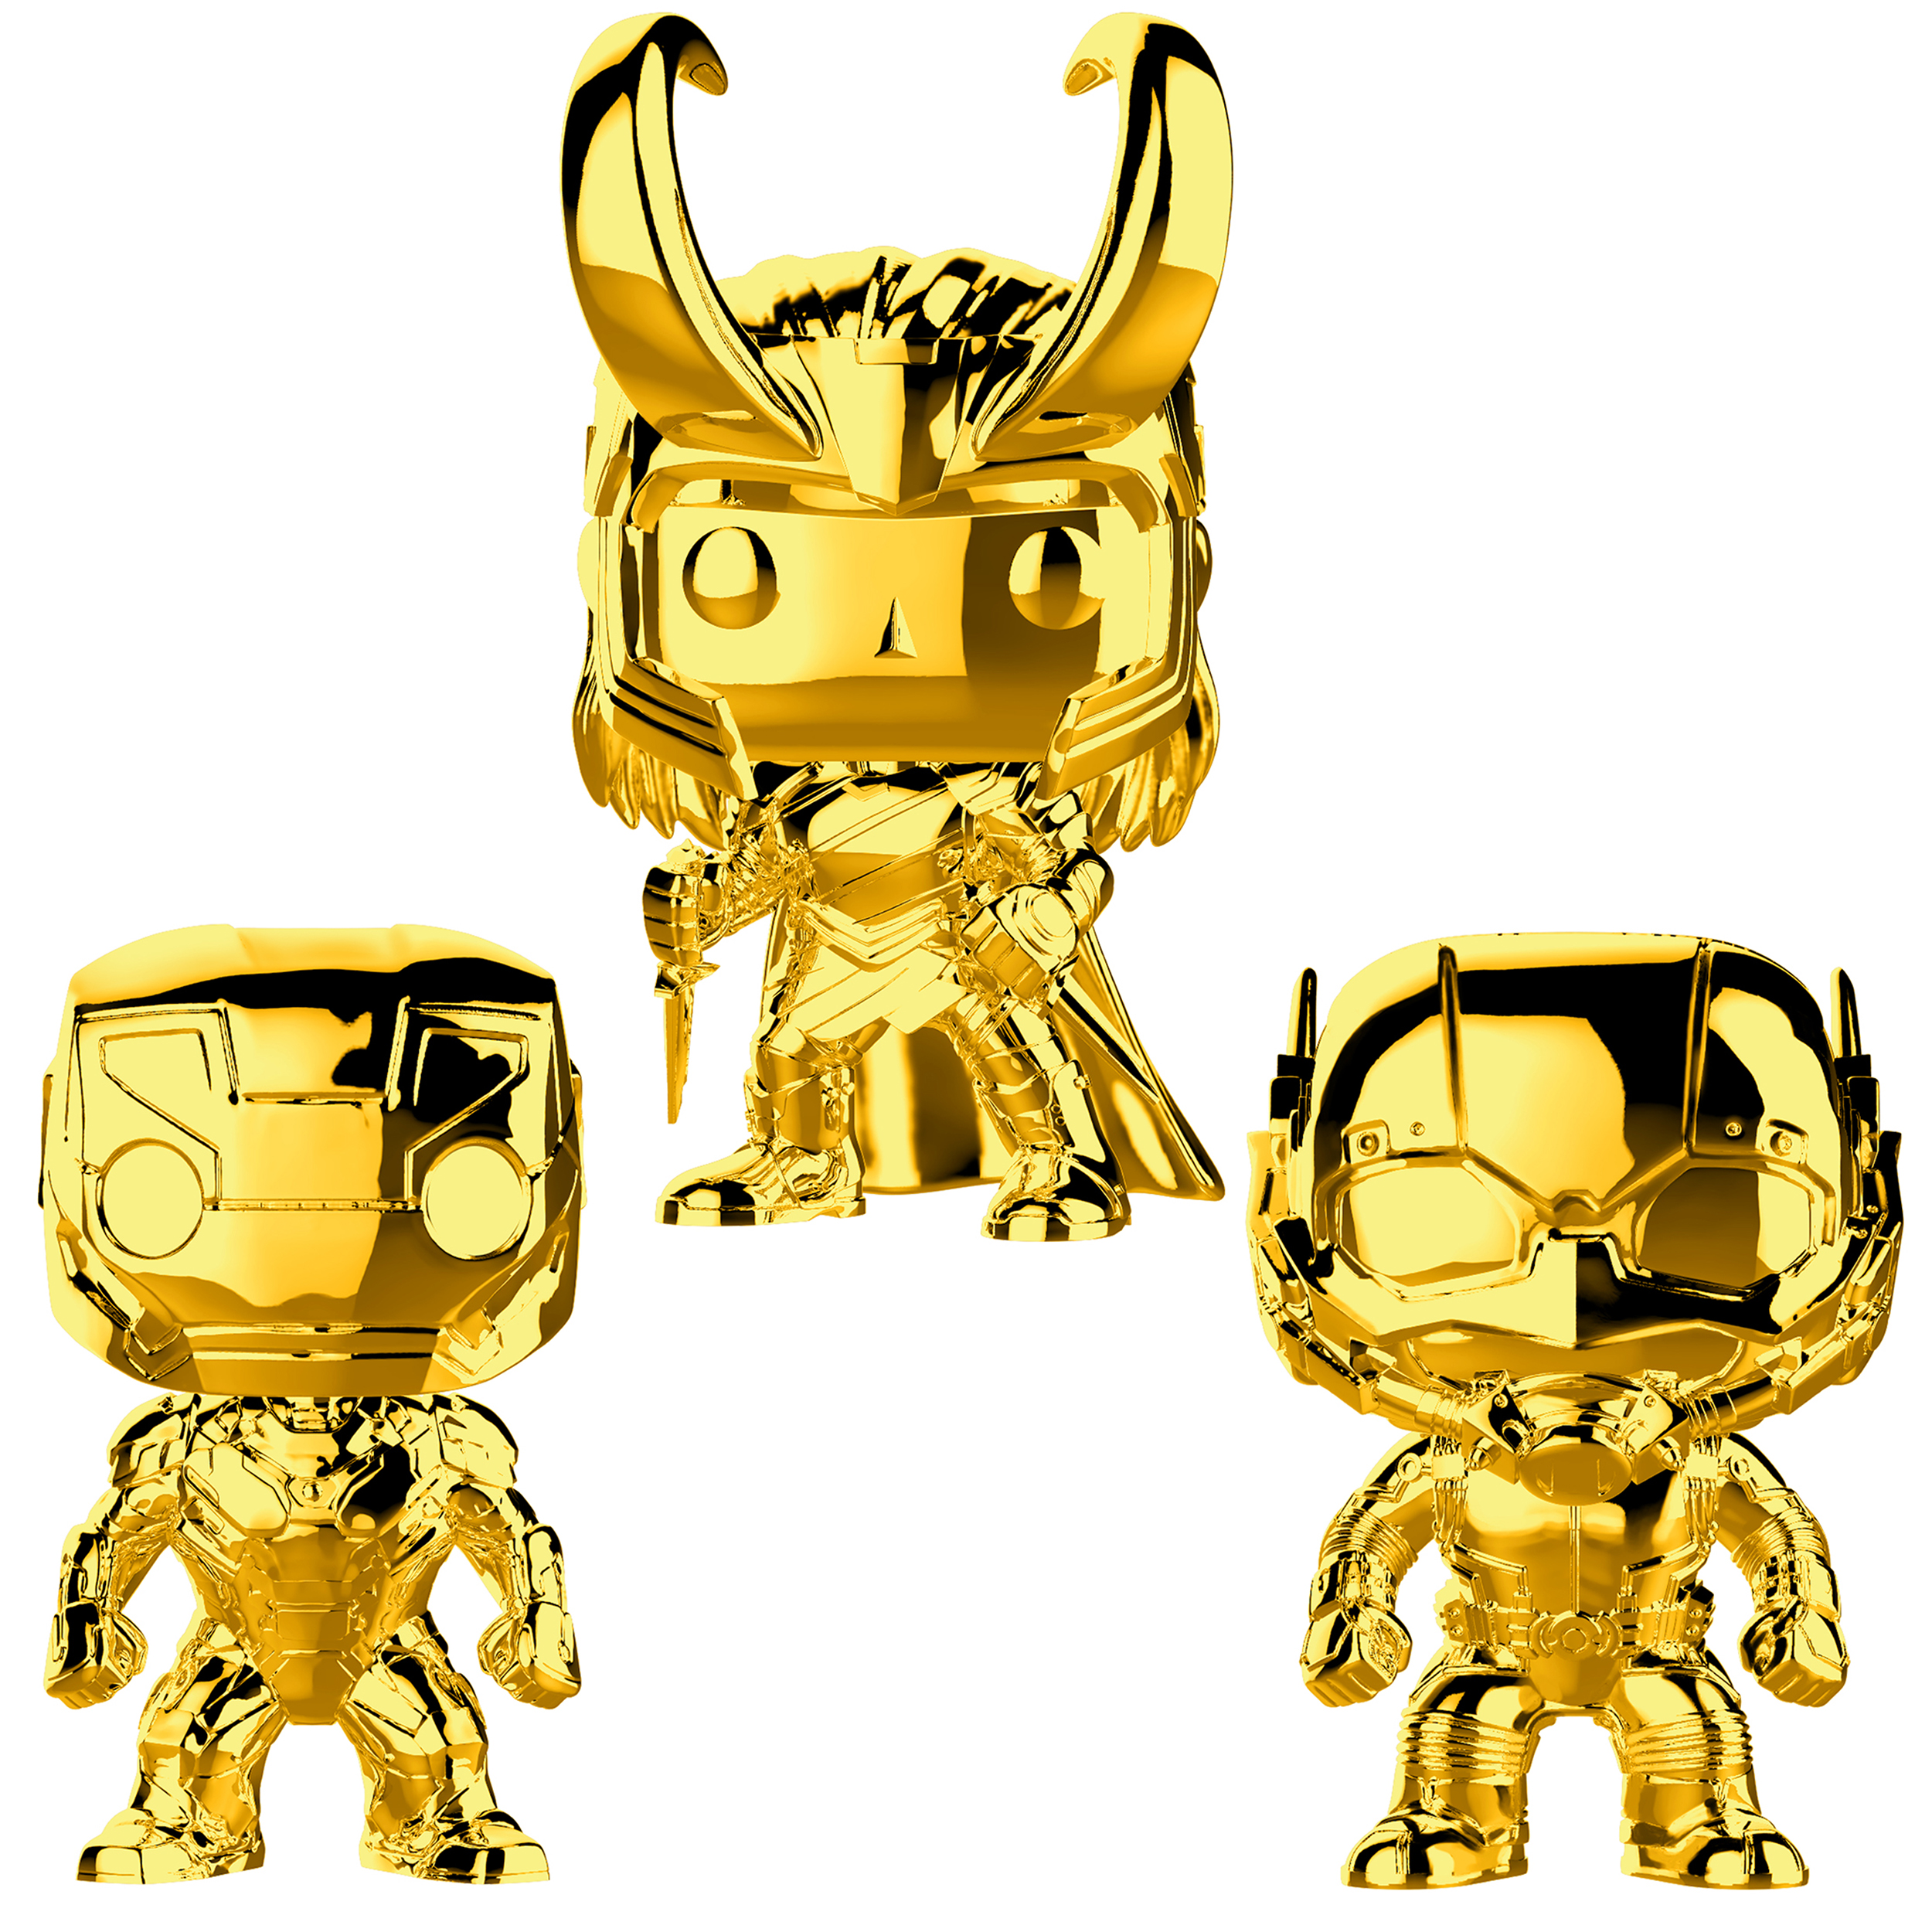 Funko POP! Marvel Studios 10 Gold Chrome Collectors Set 1 - Iron Man, Ant-Man, Loki